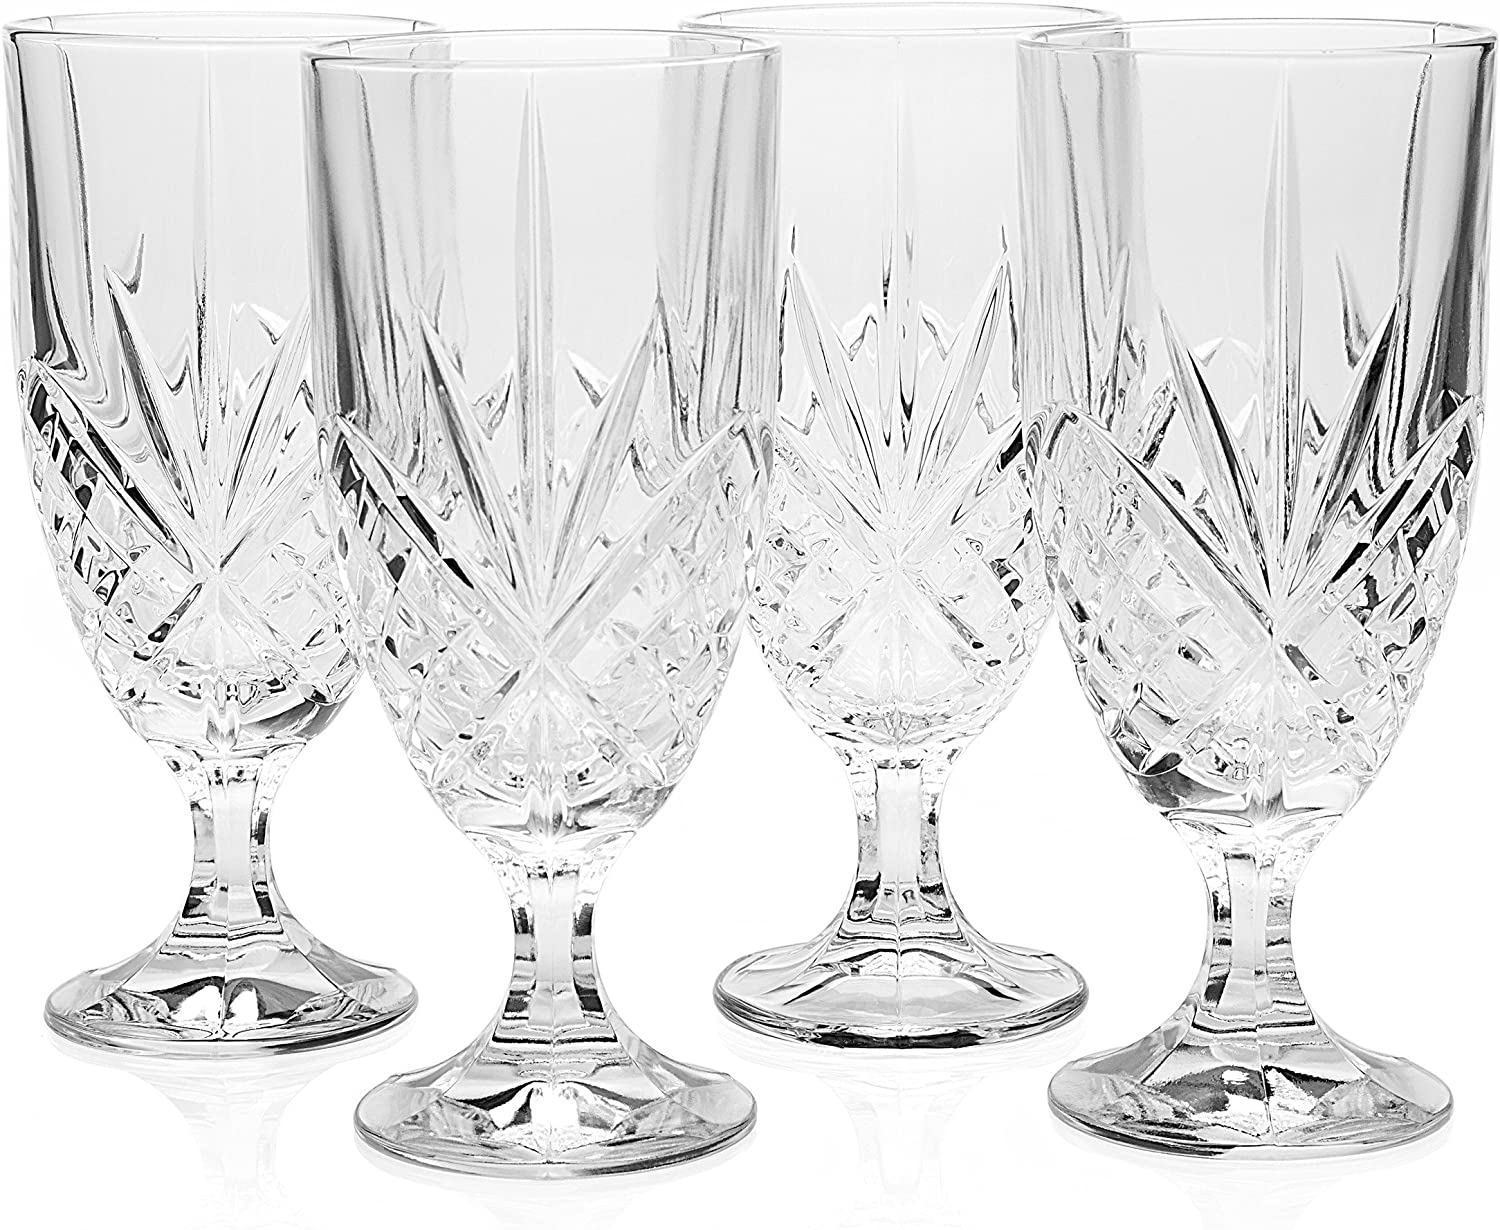 Godinger Dublin Set of 12 Iced Beverage Glasses